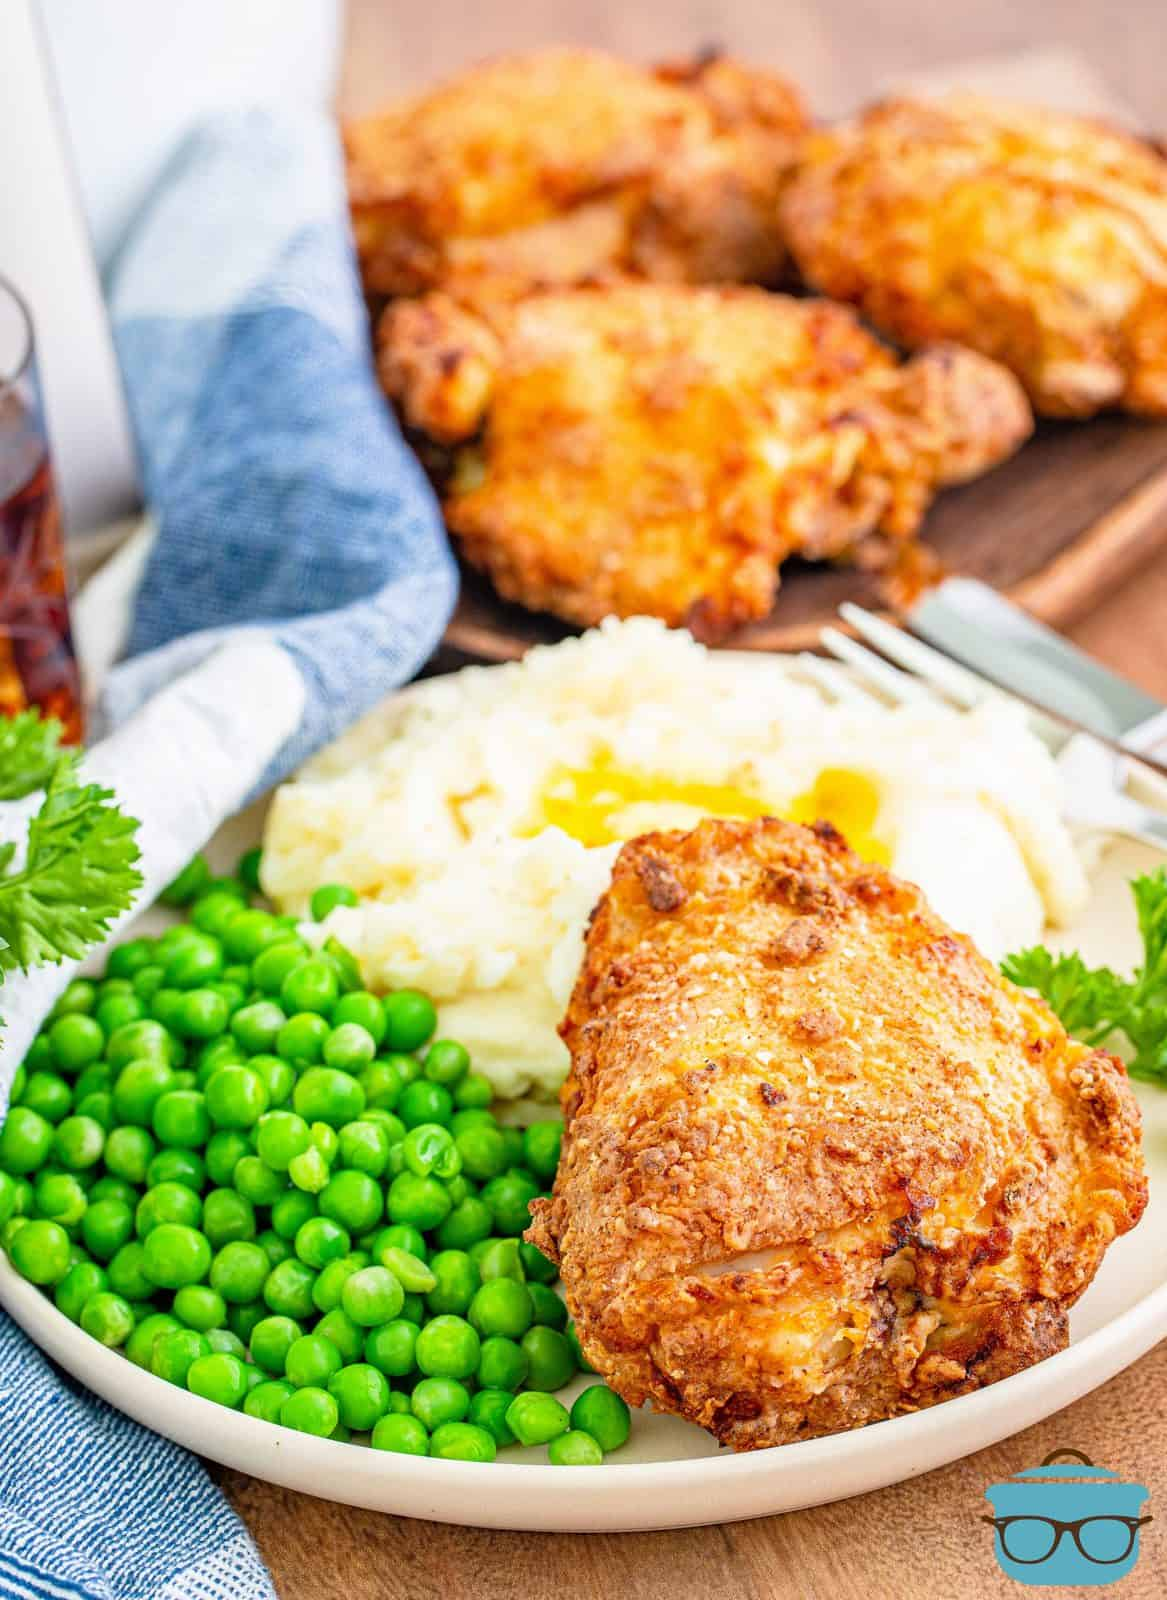 On piece of Air Fried Chicken on plate with peas and potatoes.